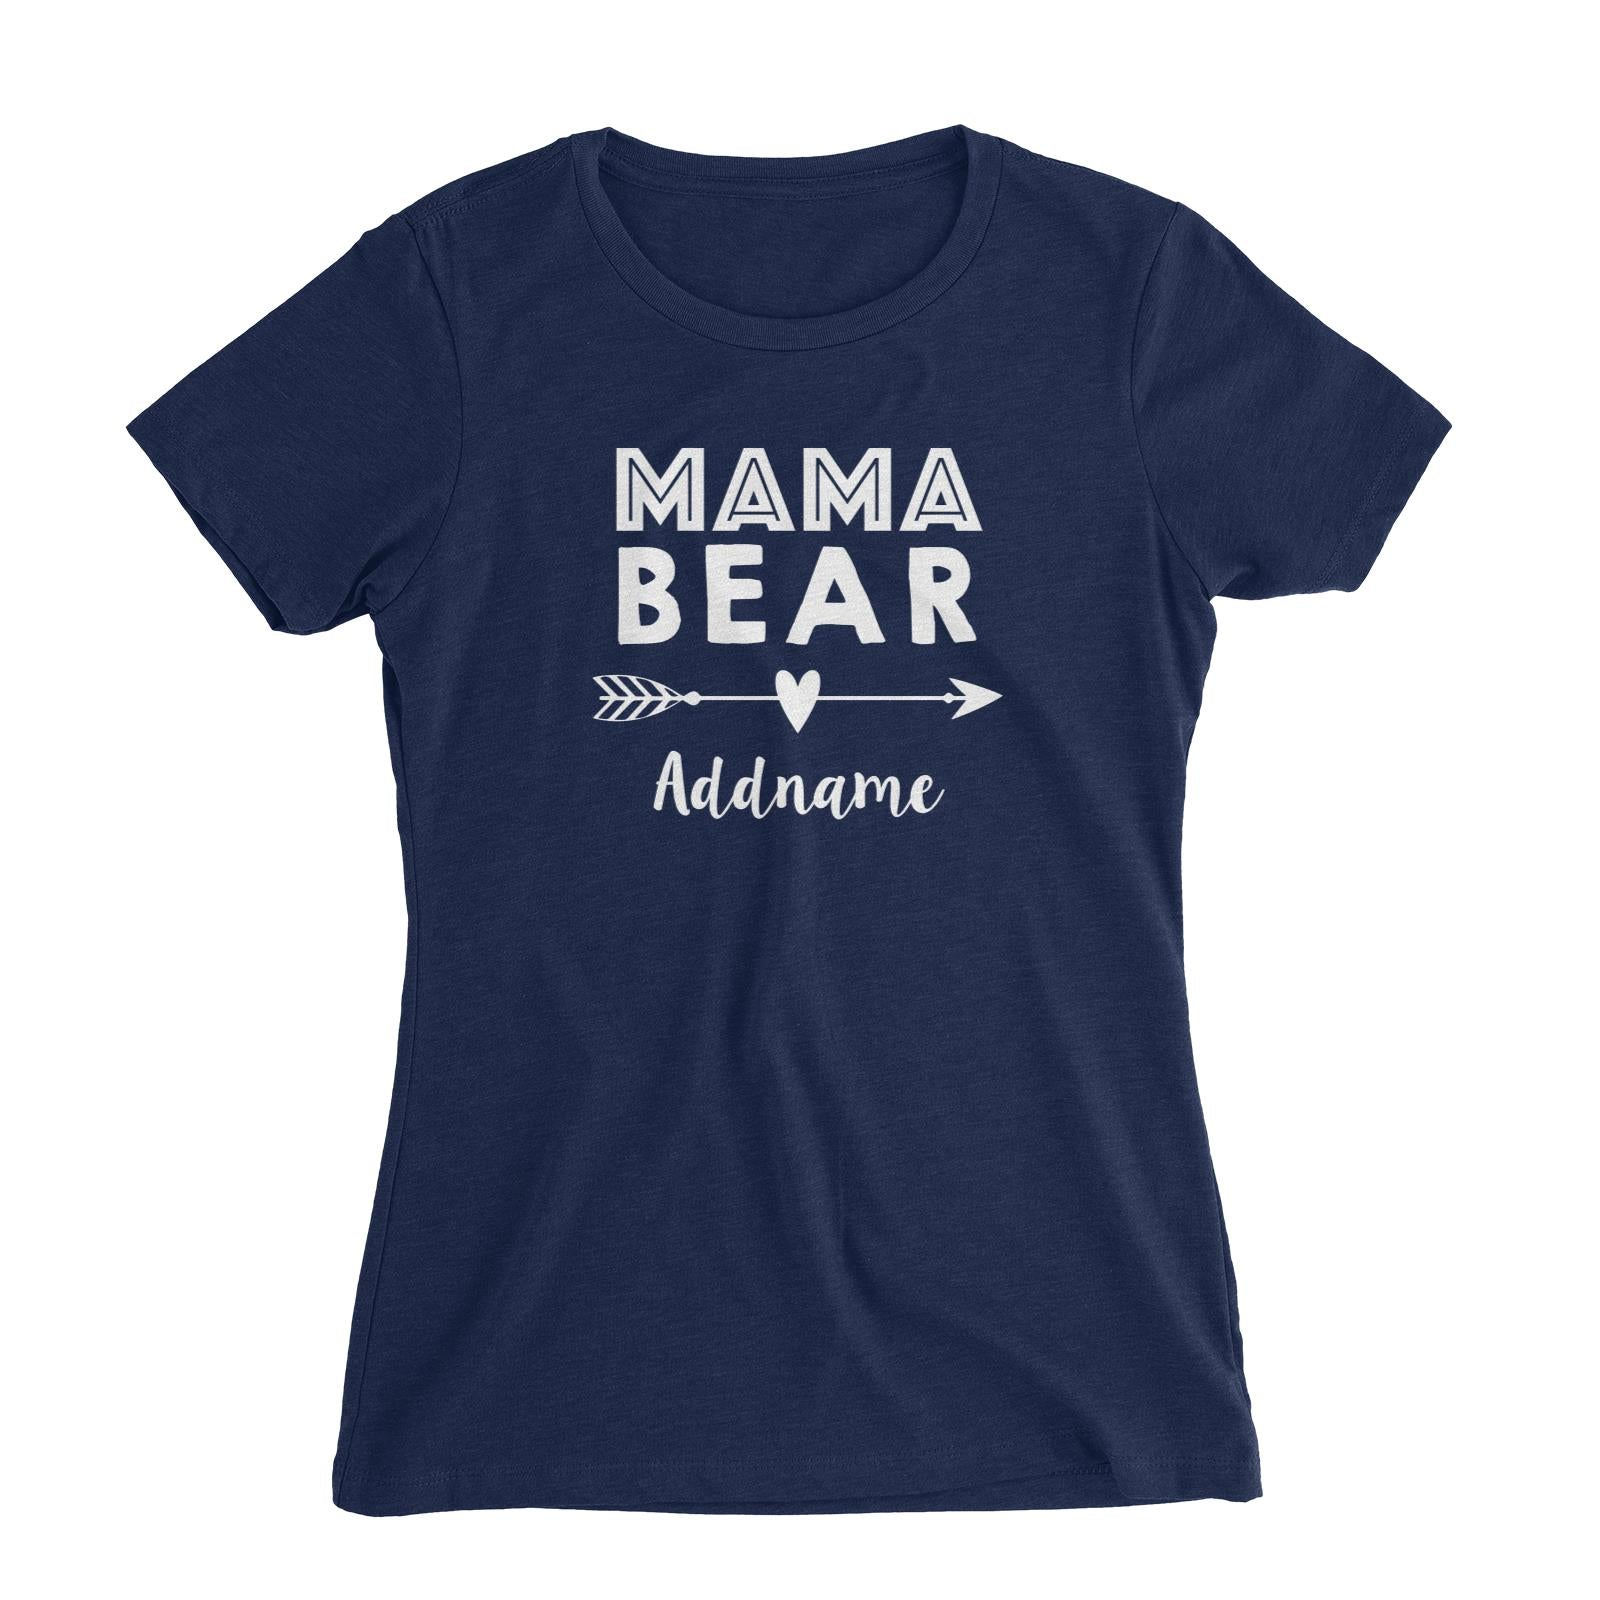 Mama Bear Addname Women's Slim Fit T-Shirt  Matching Family Personalizable Designs